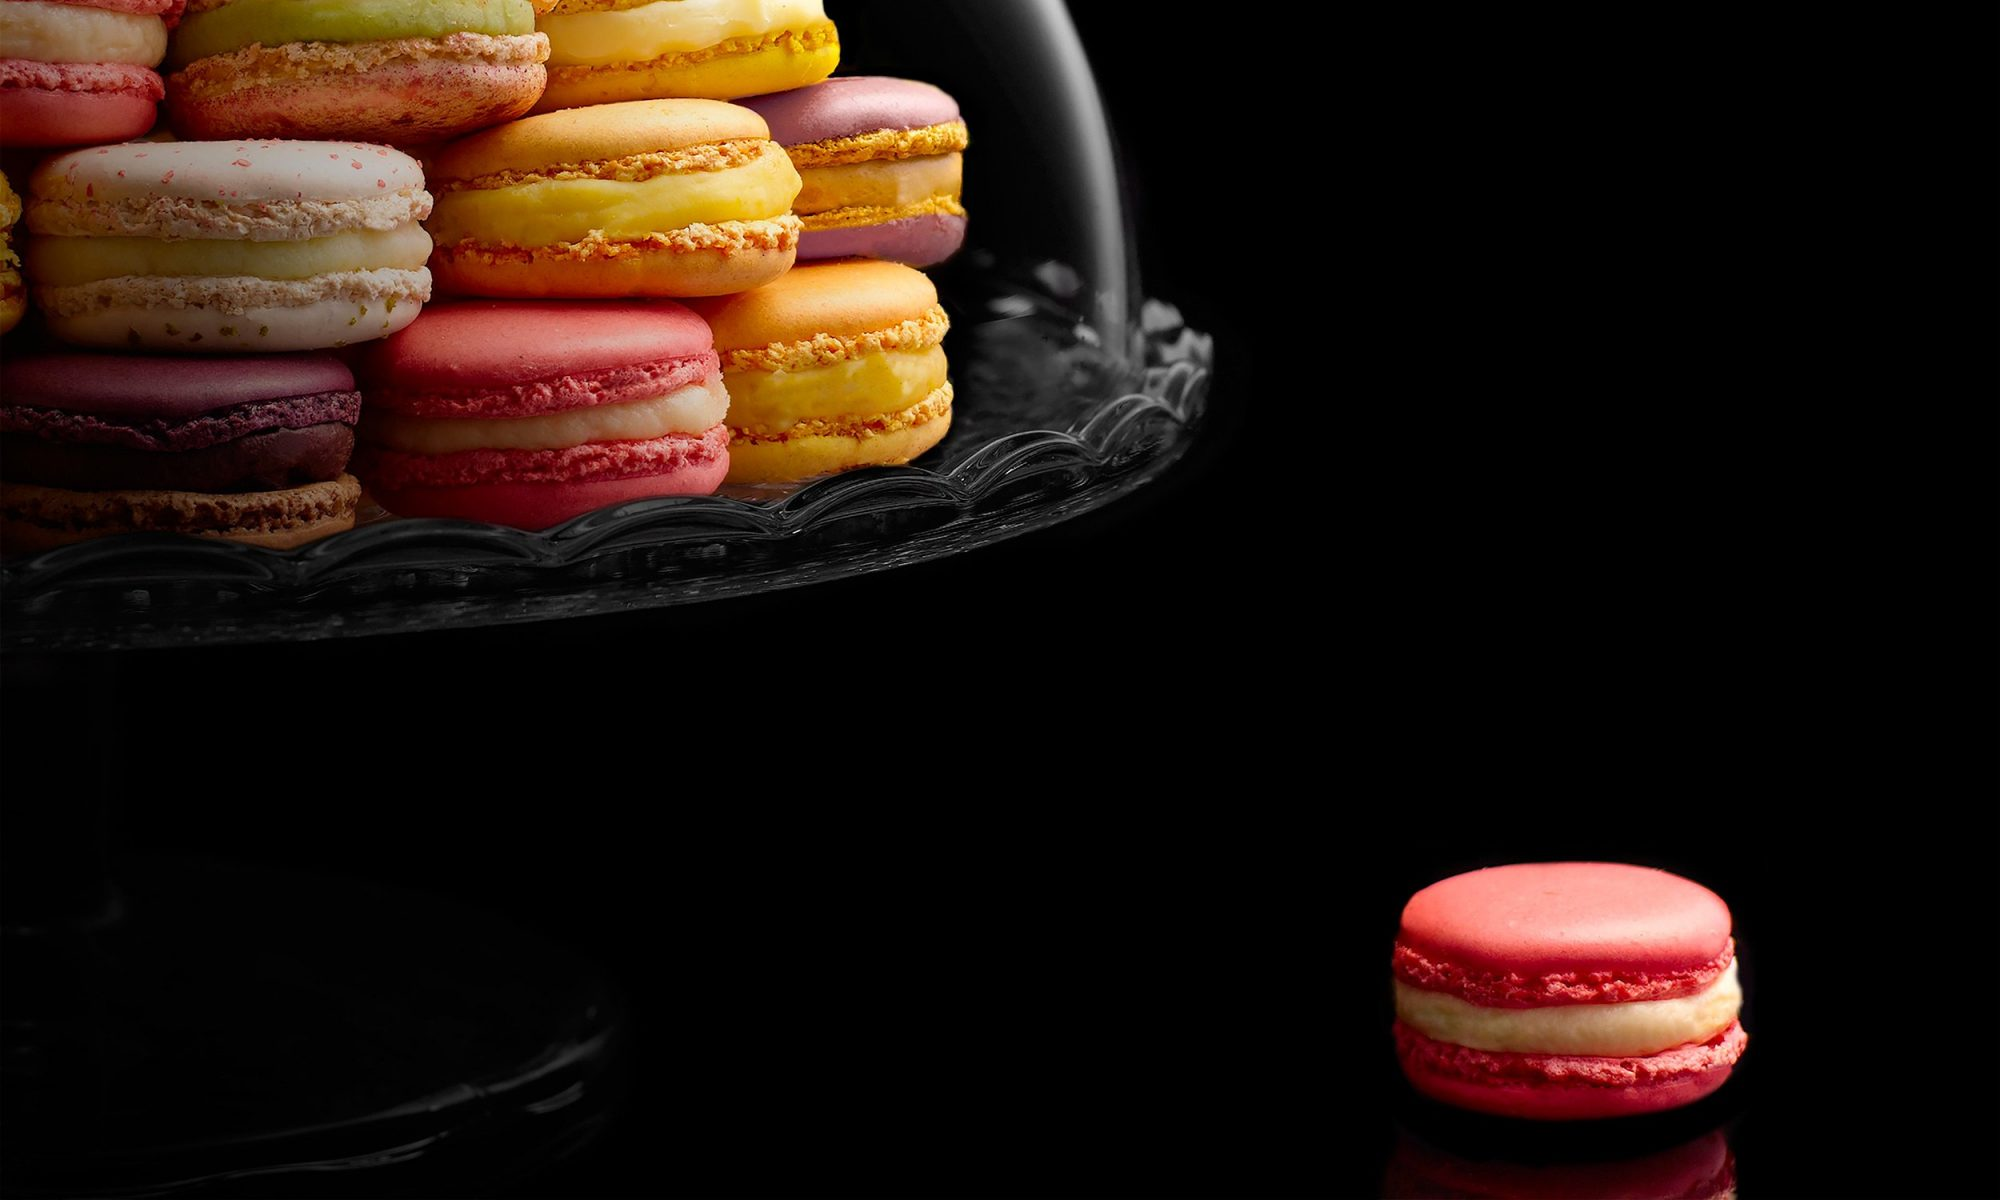 EC: You Can Buy the World's Most Expensive Macaron for $9,703